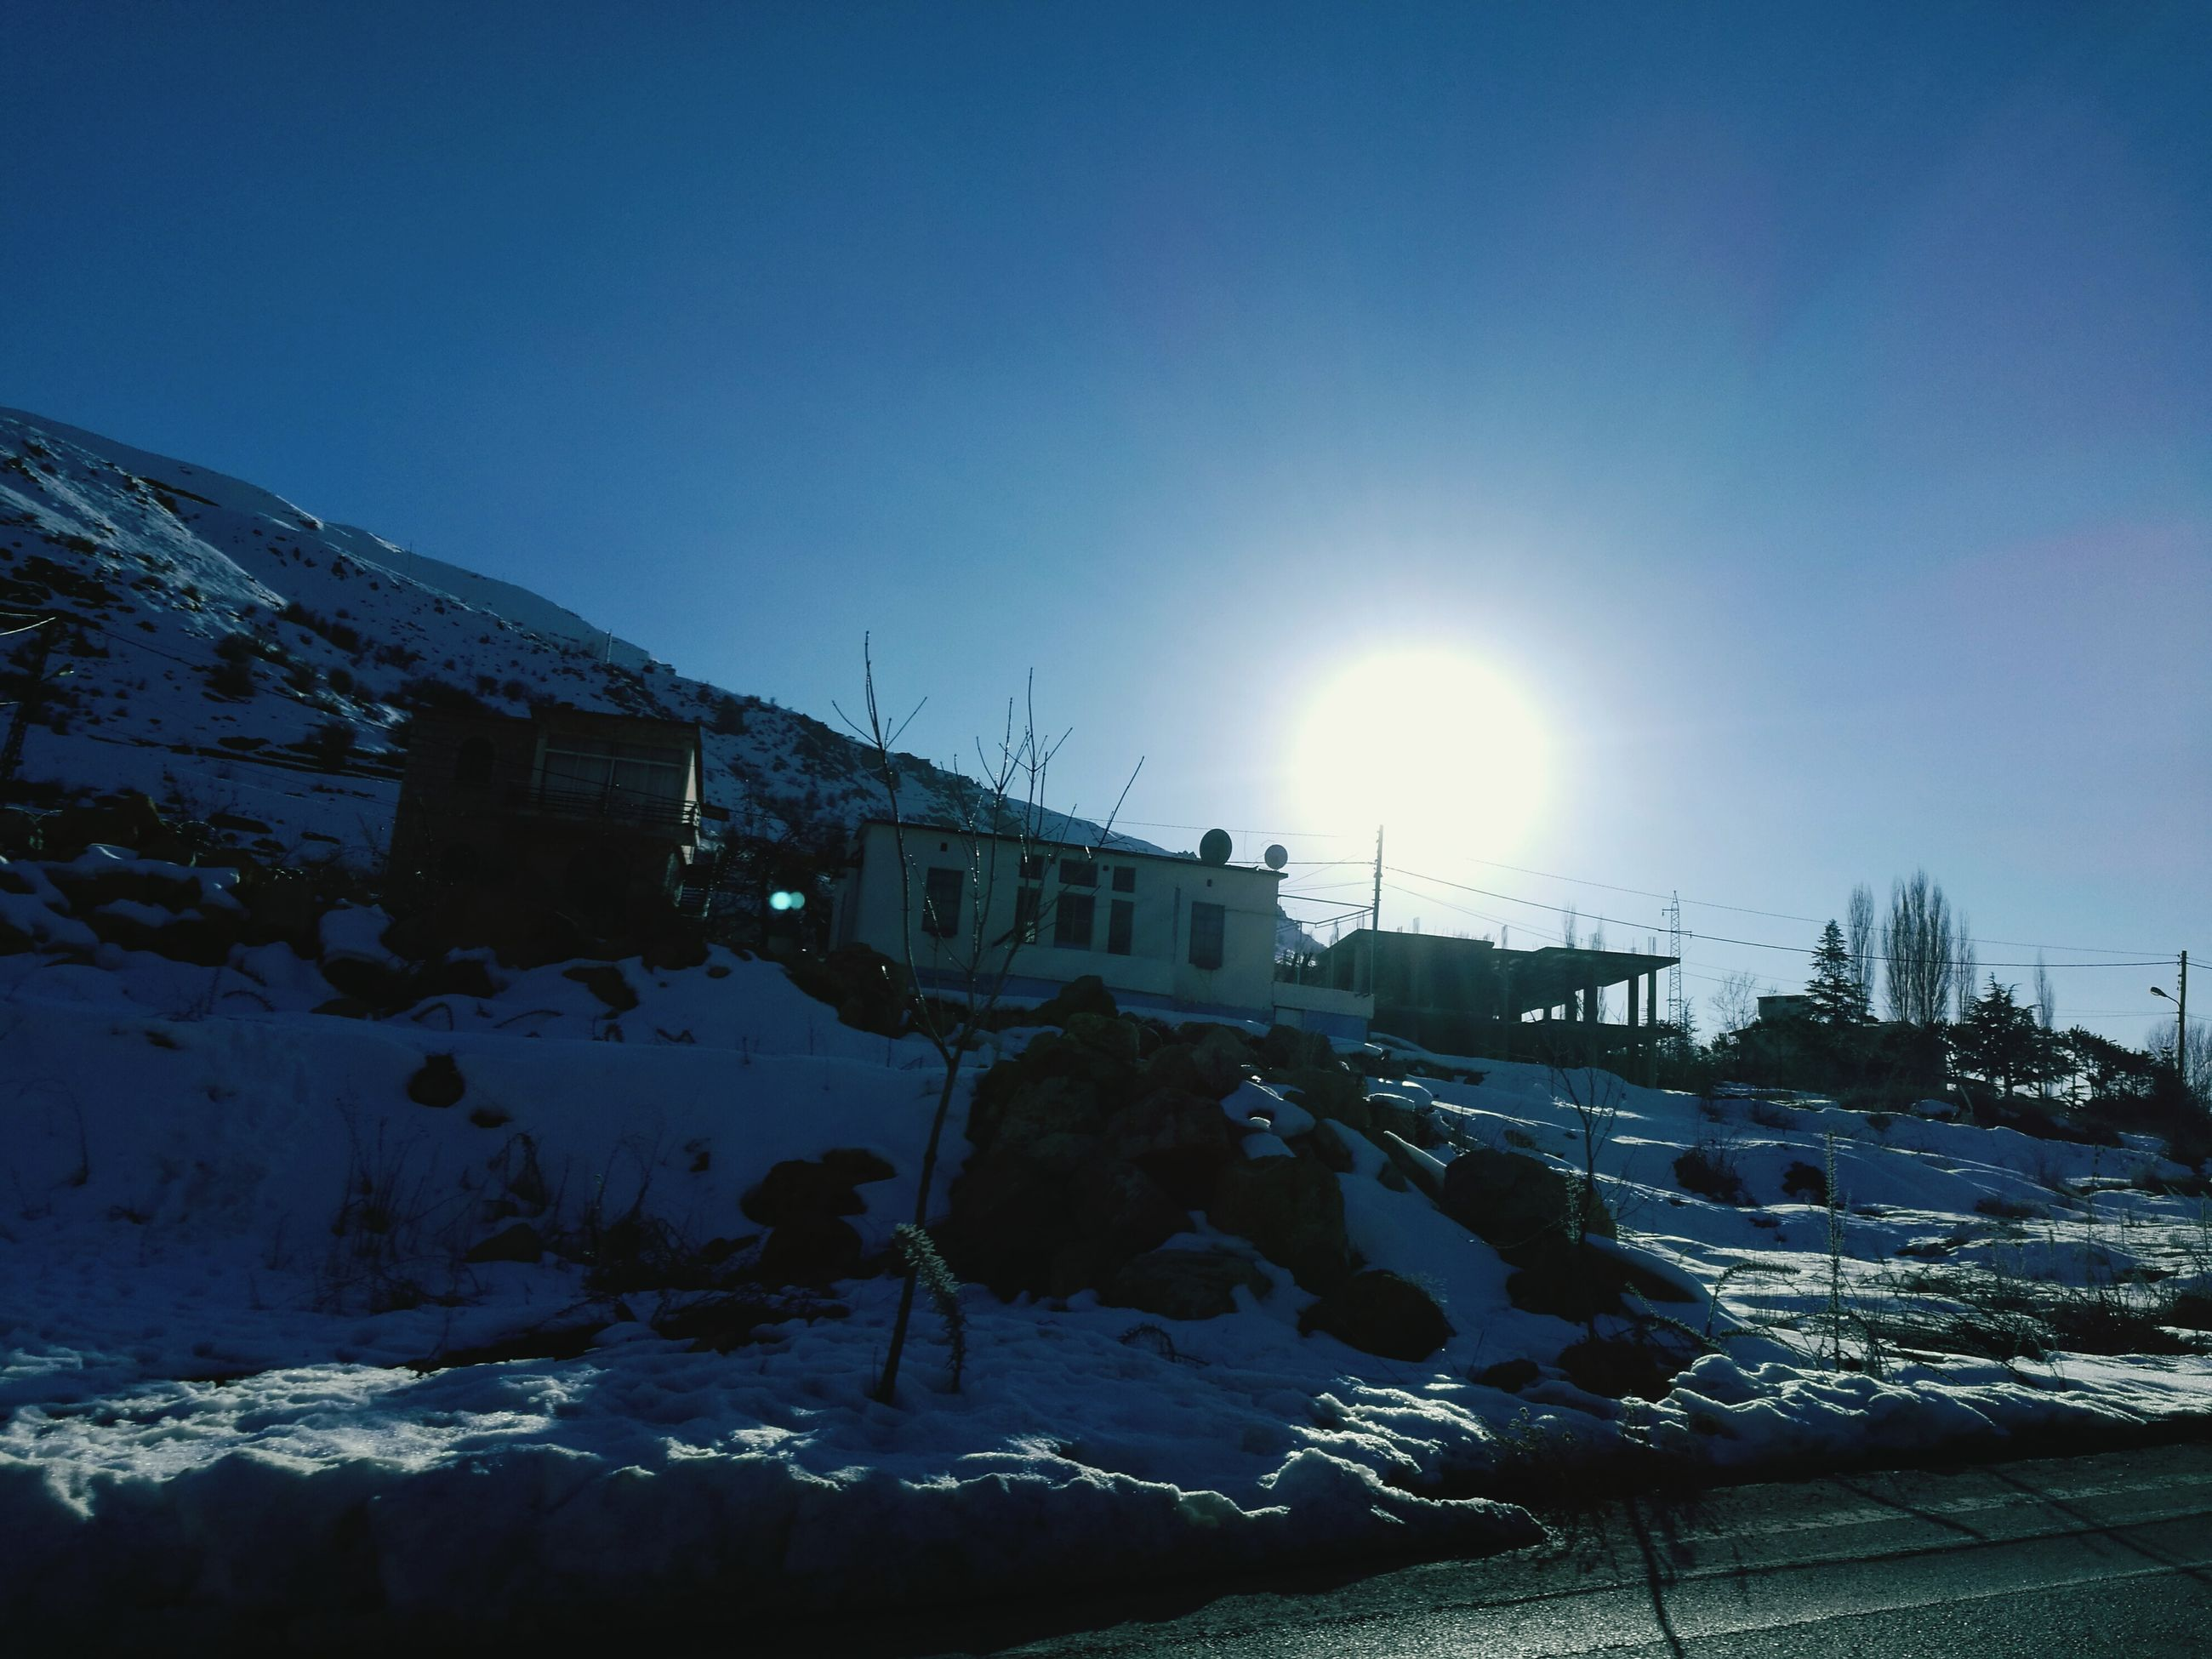 cold temperature, winter, snow, built structure, sky, outdoors, nature, frozen, leisure activity, winter sport, building exterior, mountain, sun, vacations, beauty in nature, city, architecture, ski lift, no people, day